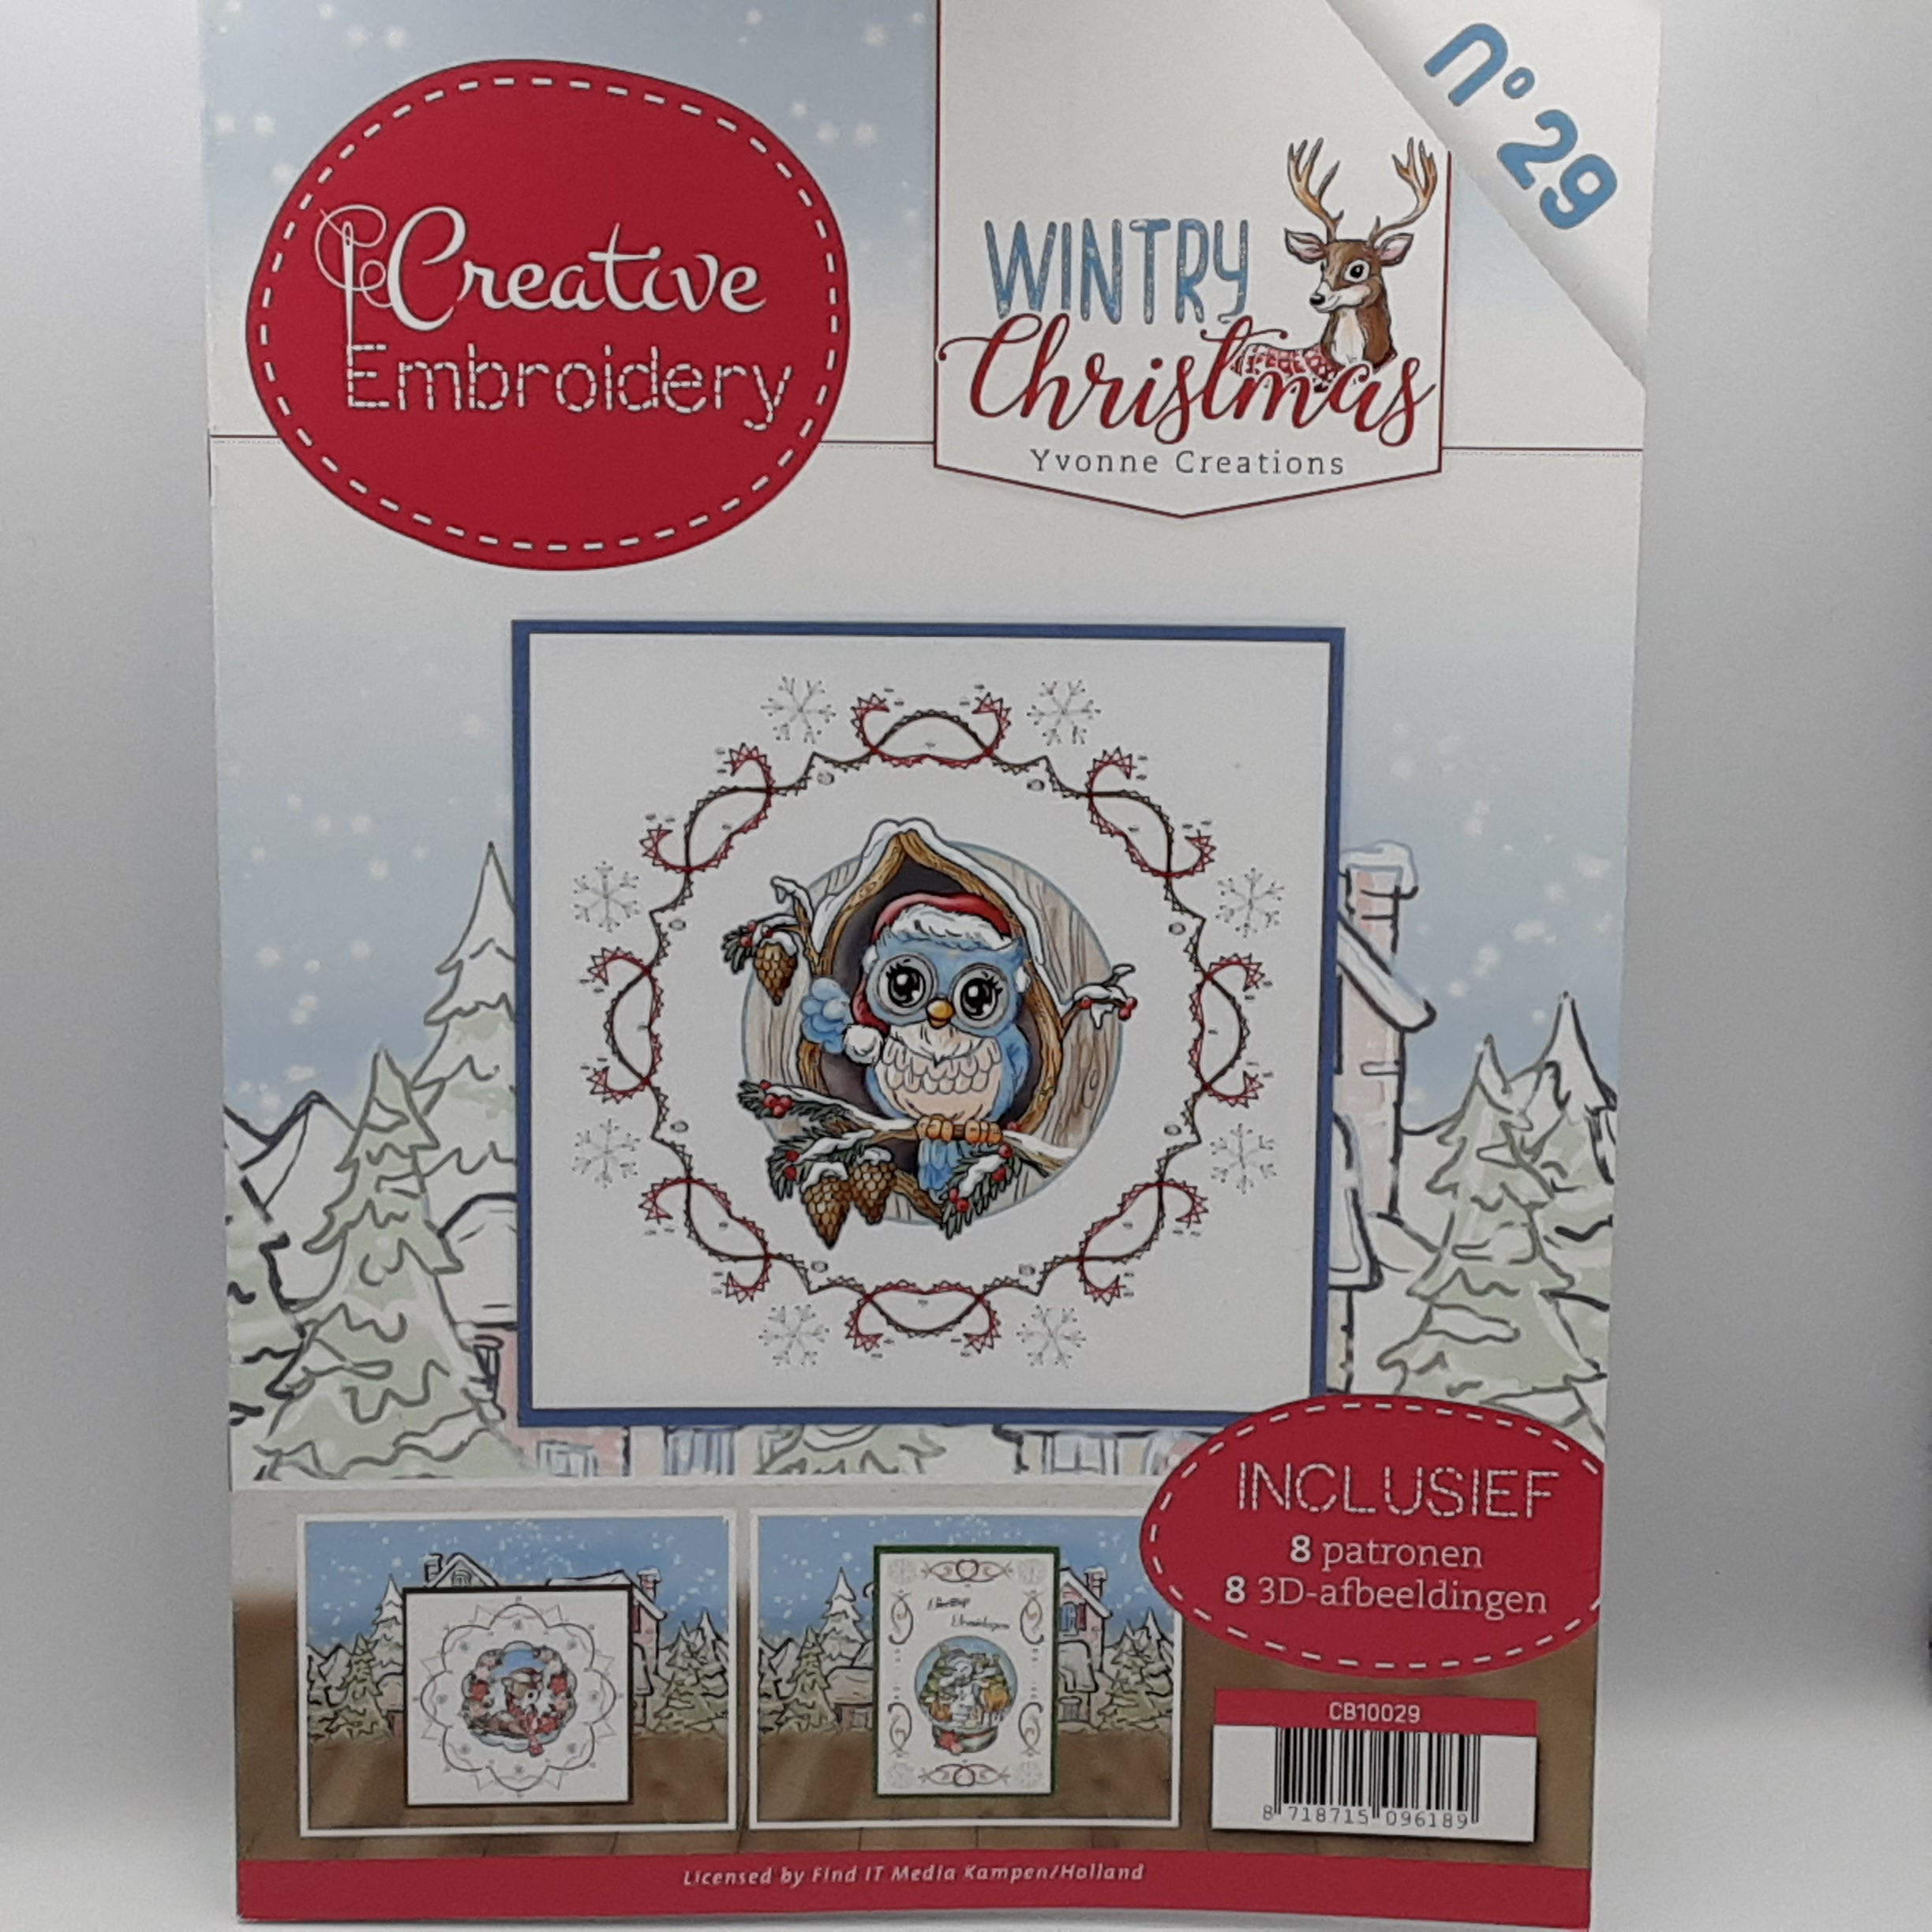 creative embroidery 29 Wintry christmas